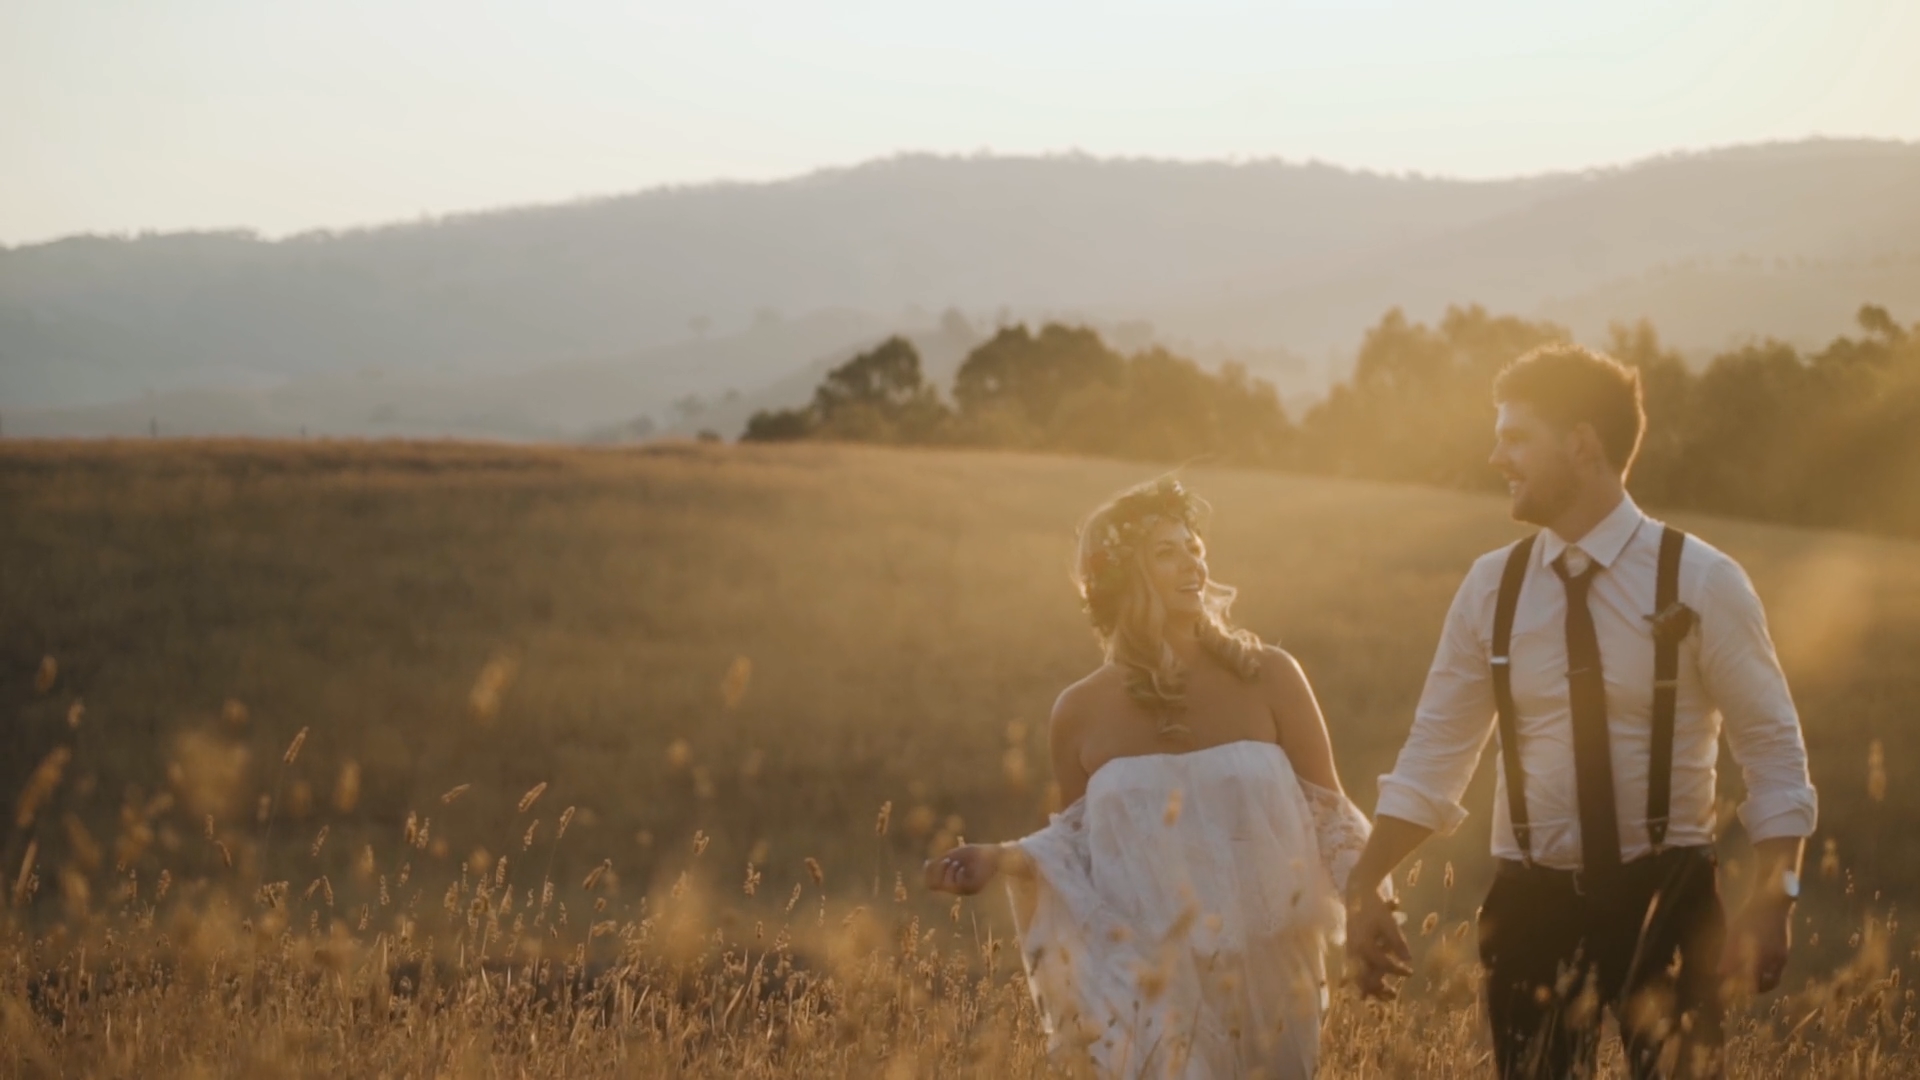 Corey + Jes | Strath Creek, Australia | A Family Farm